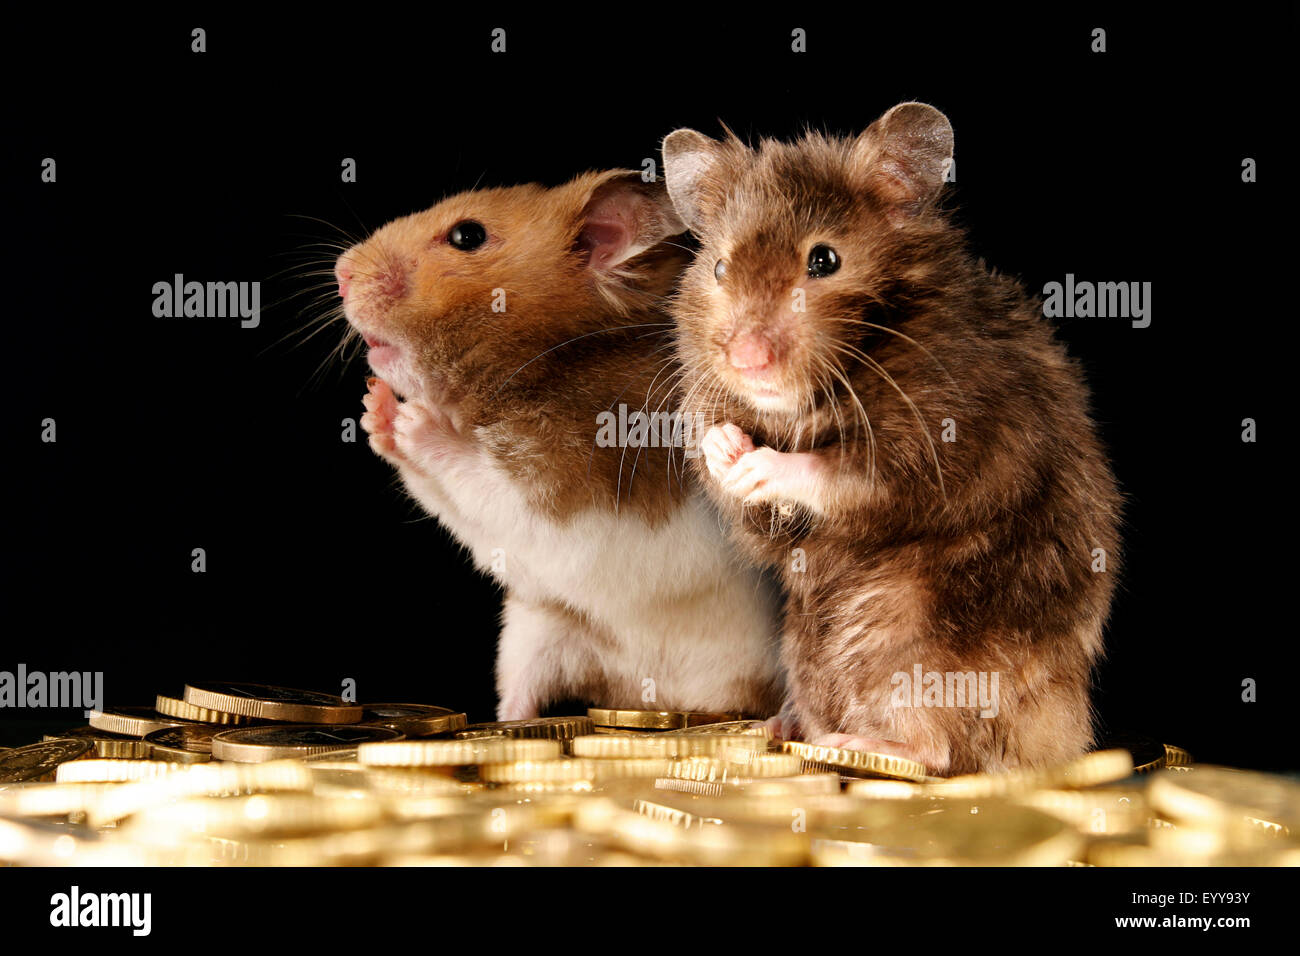 golden hamster (Mesocricetus auratus), two moneyed golden hamsters with Euro coins - Stock Image